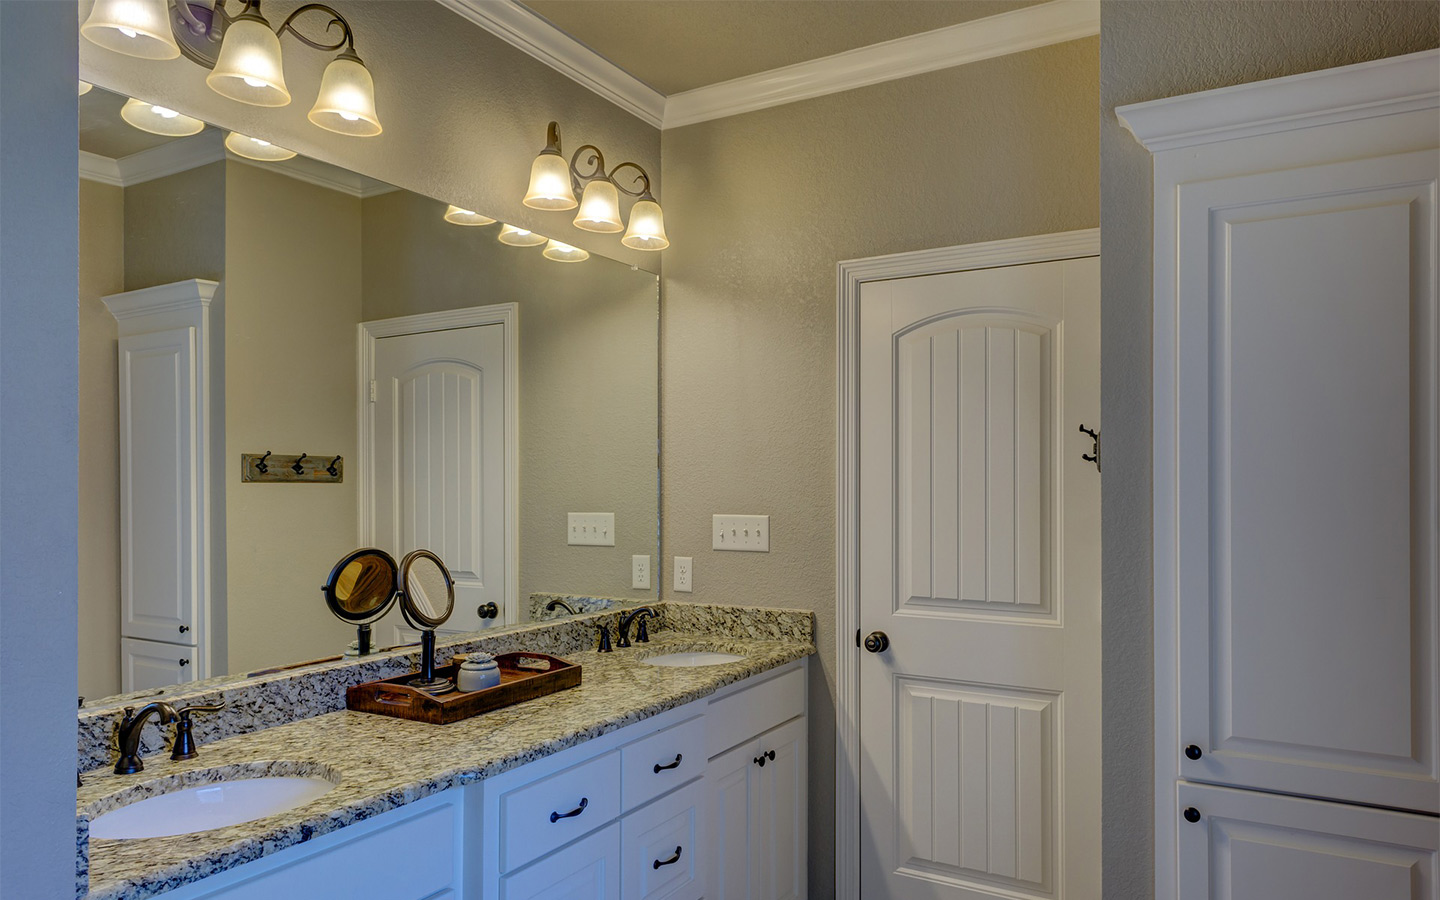 A washroom picture showing plenty of lights on top